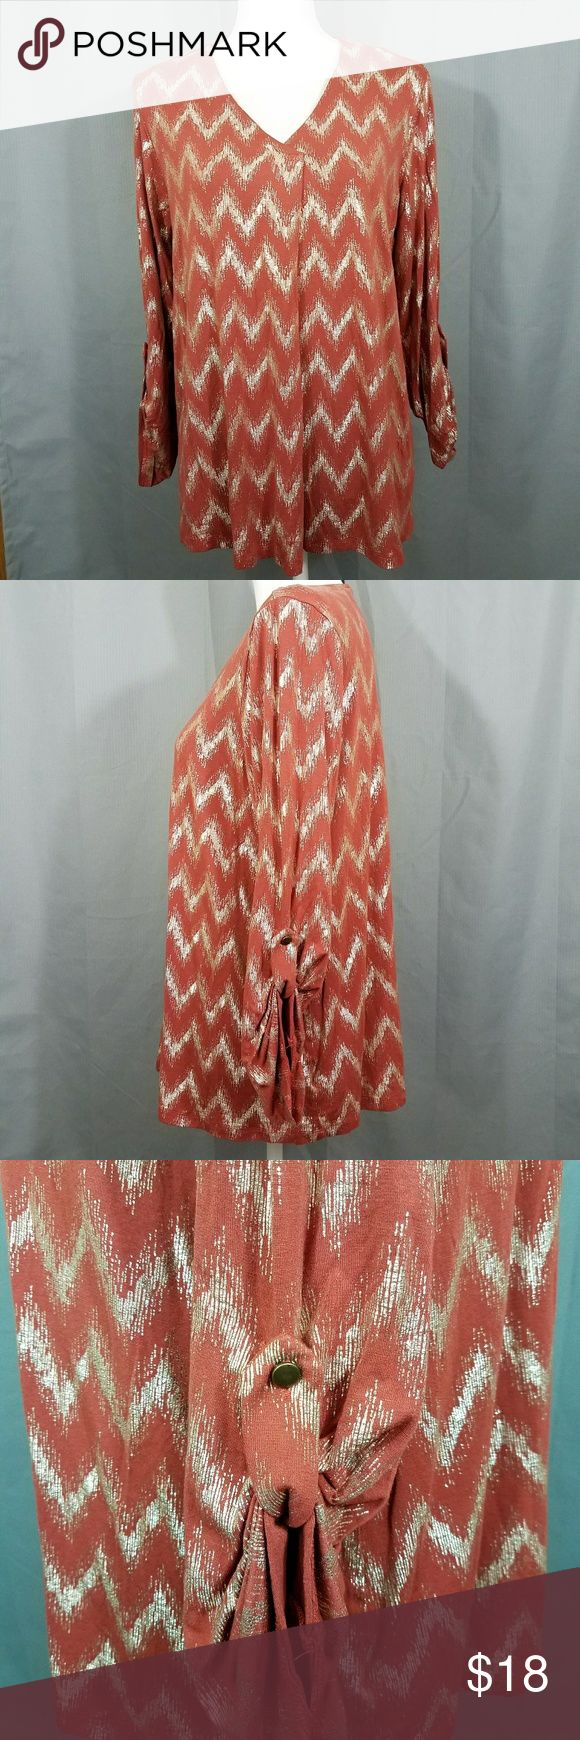 ❄SNOWDAY SALE❄Gold Chevron Top Excellent condition. Burnt orange with metallic gold chevron print. Size XL. Fun for any season! bobeau Tops